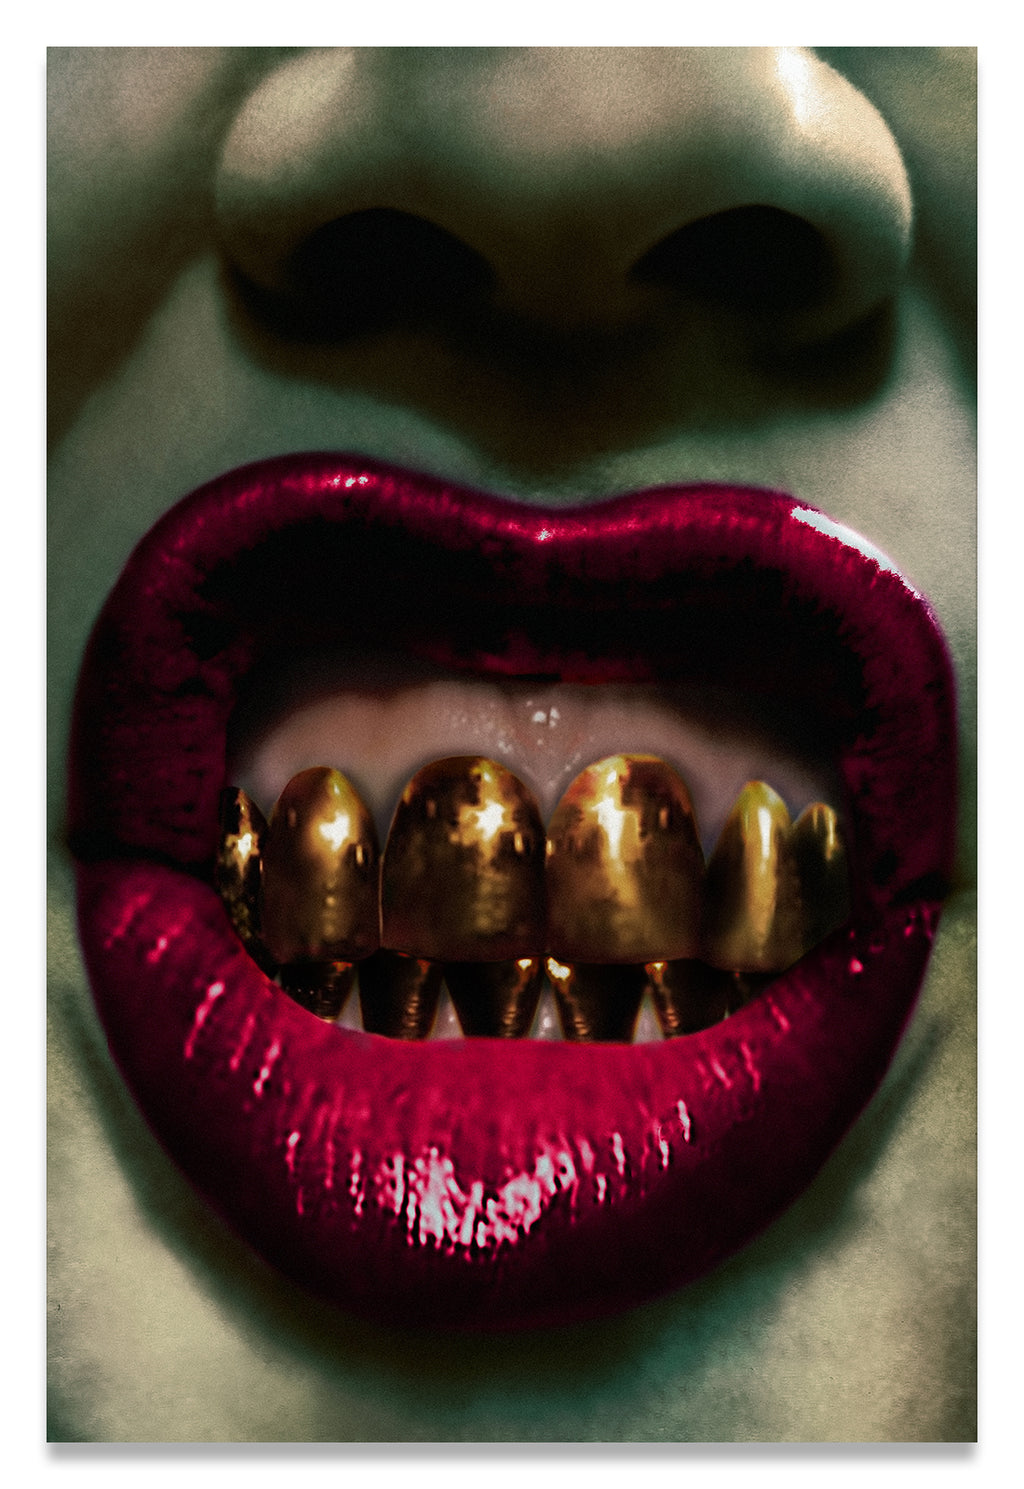 Surreal- Close Up of Crimson Red Lips with Solid Gold Teeth in an Energetic Expression-on metal-aluminum